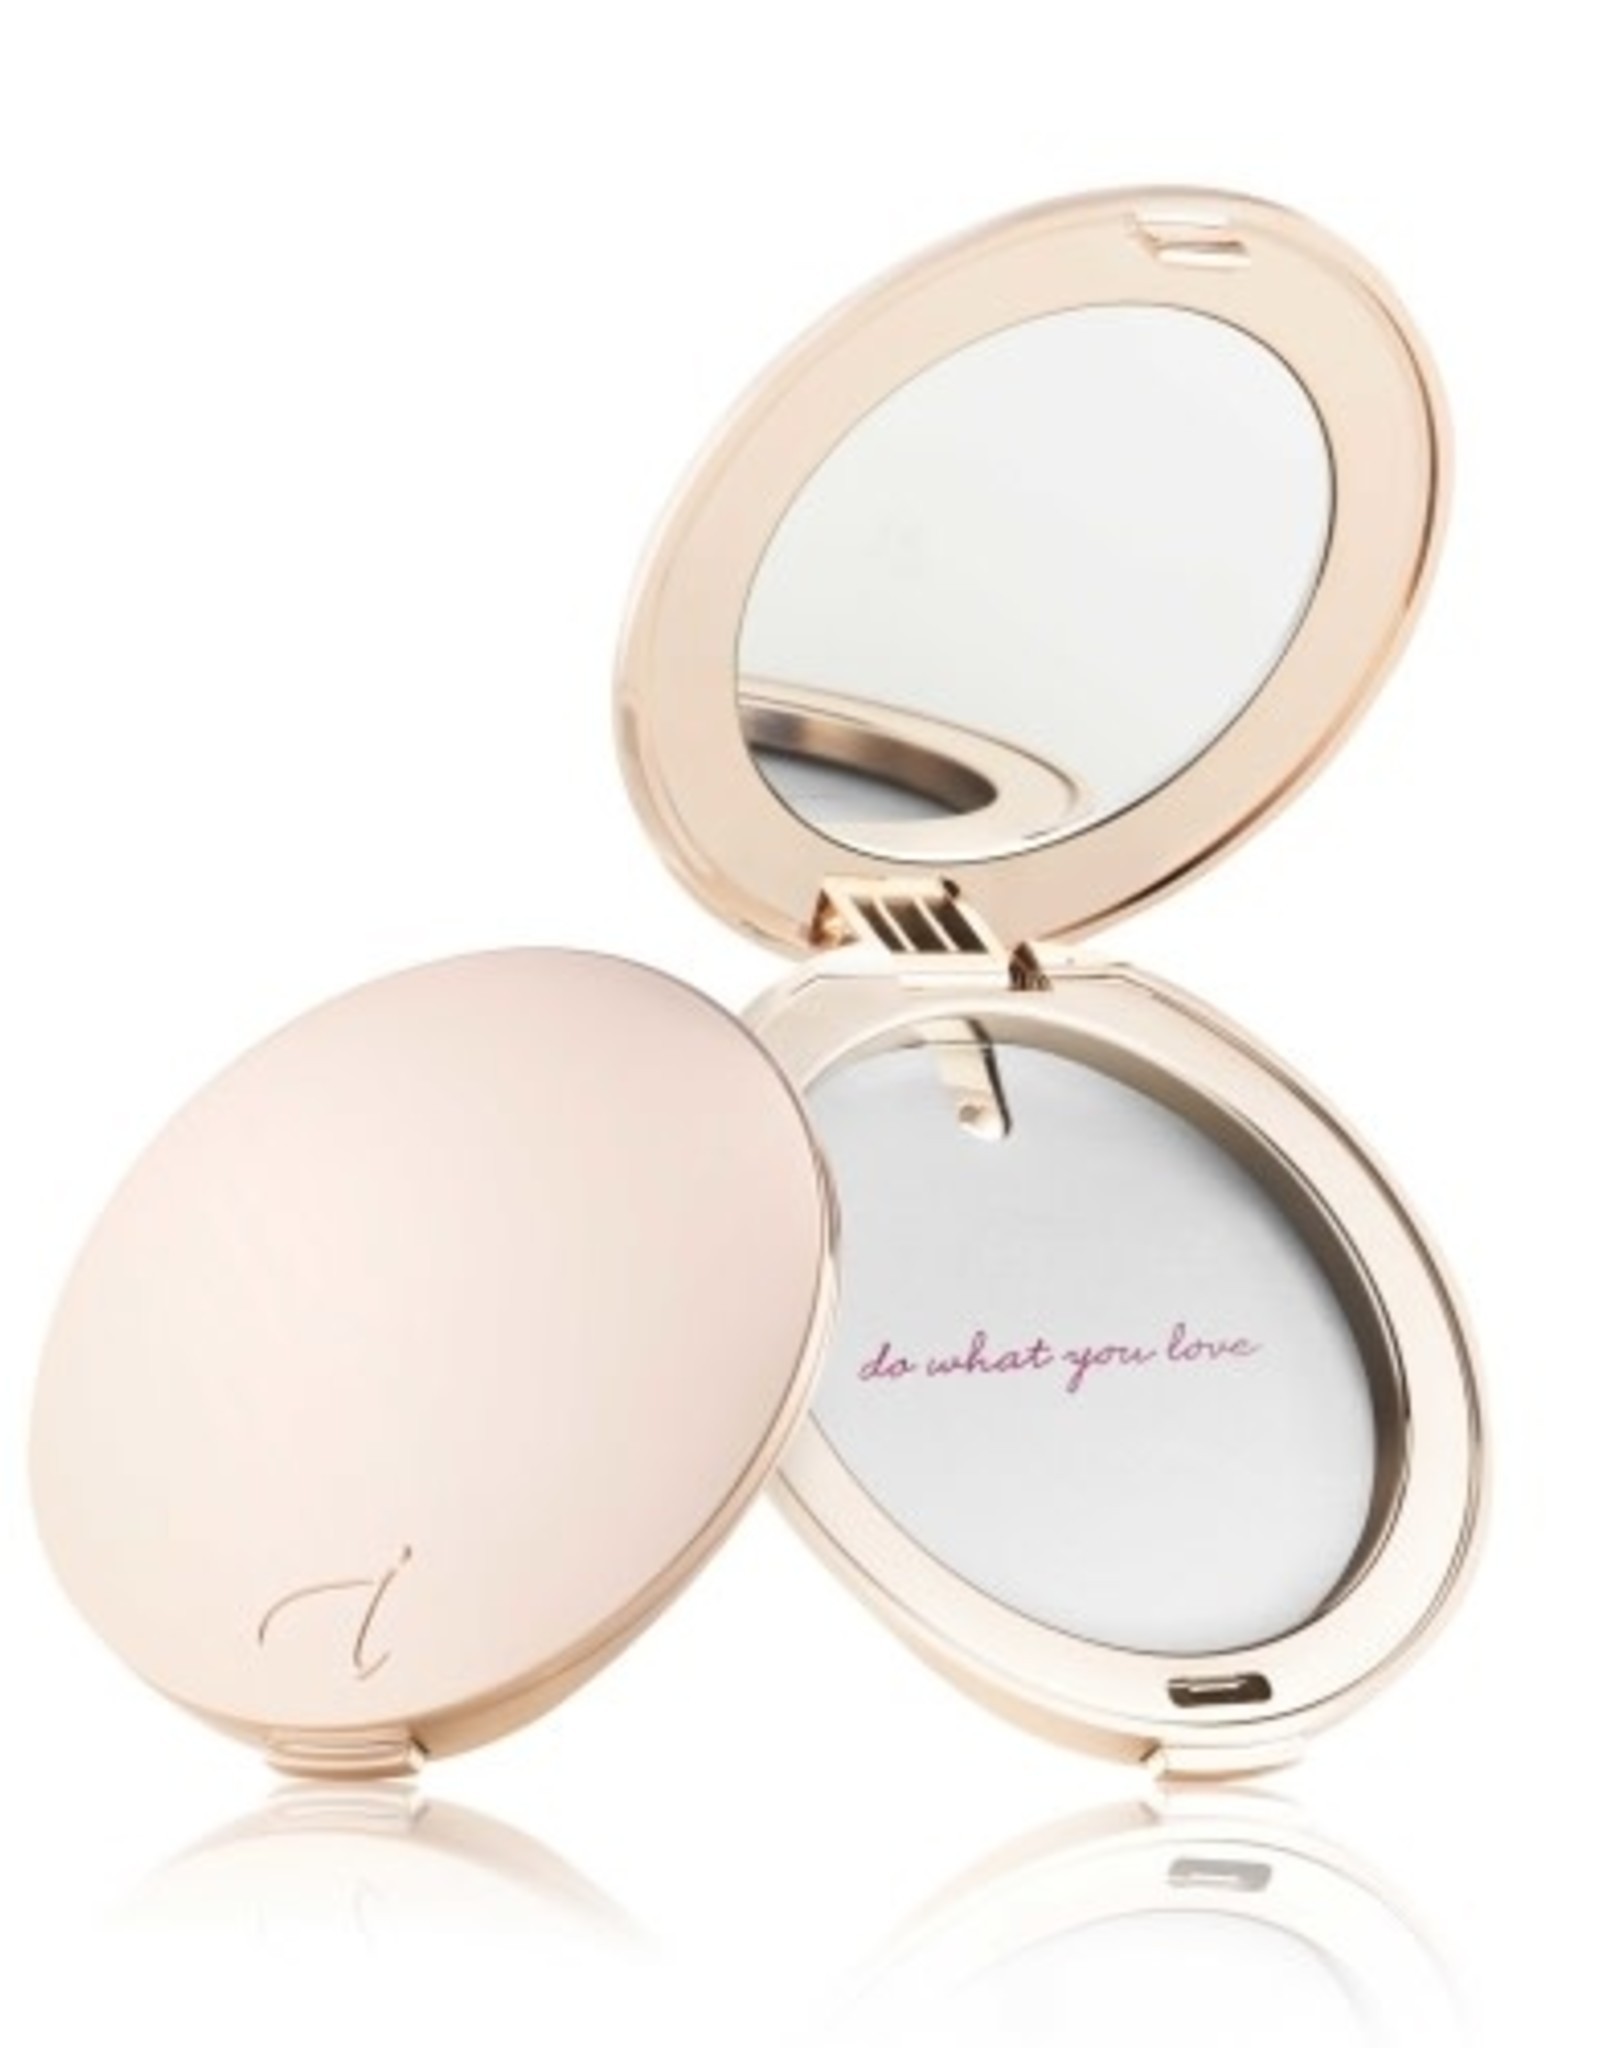 Rose gold compact refillable